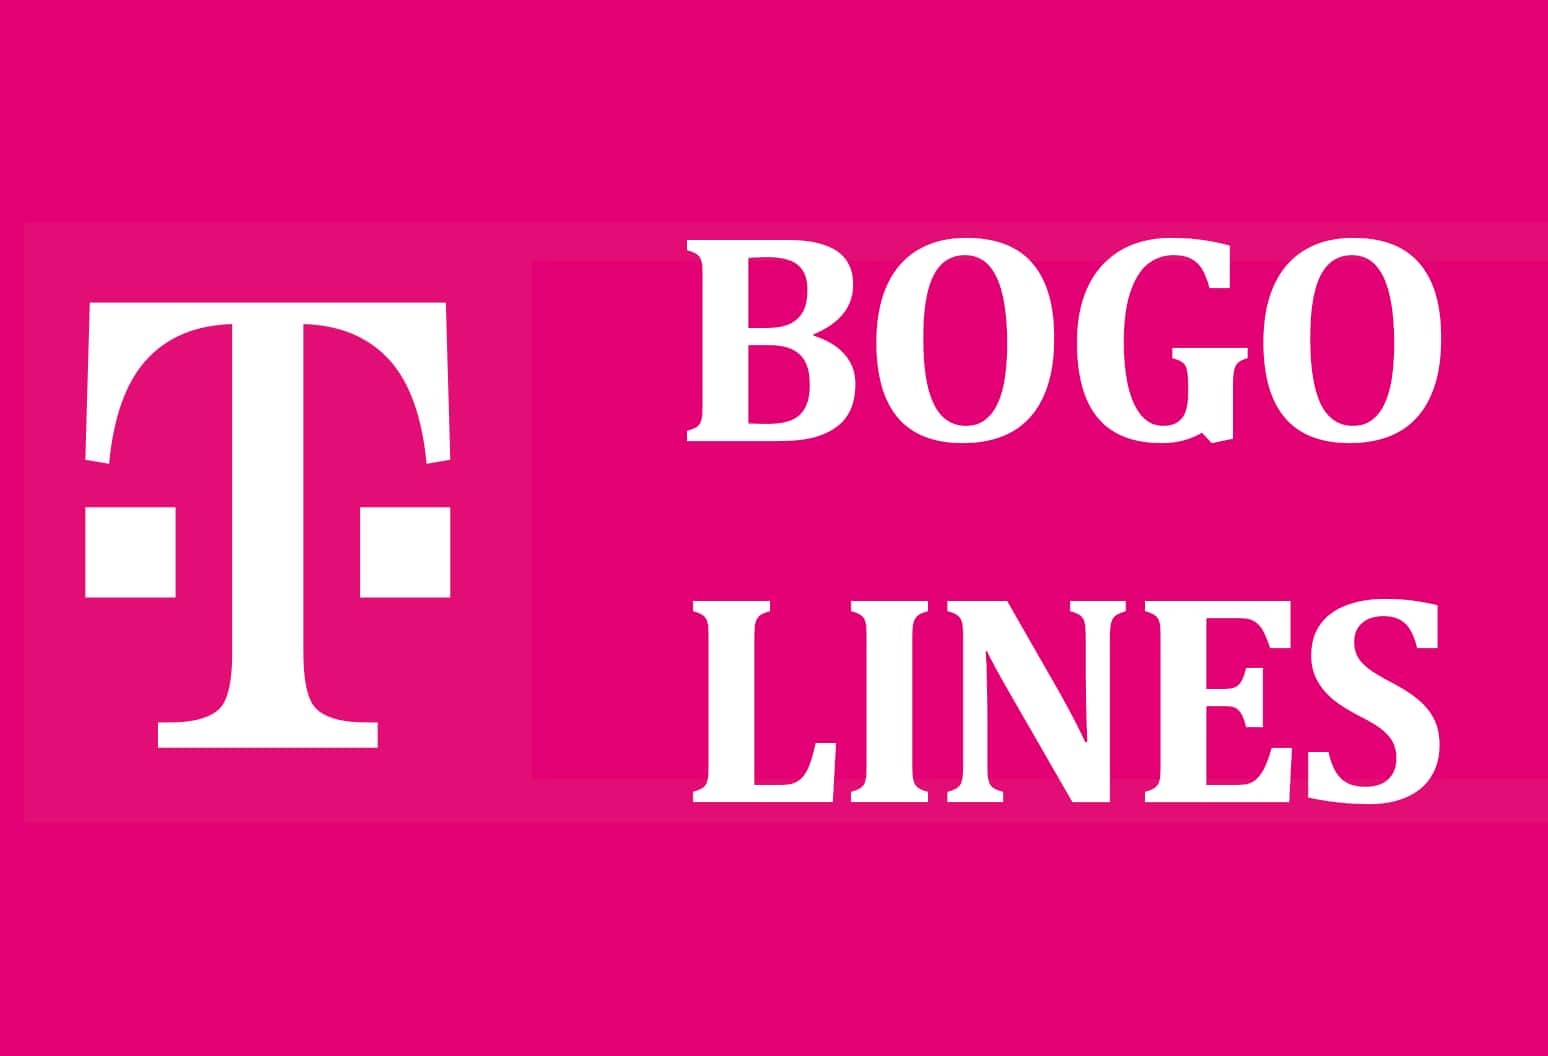 T-Mobile Customers: Buy One Get One Phone Lines on Most Plans (Update: SC plan exclusion)